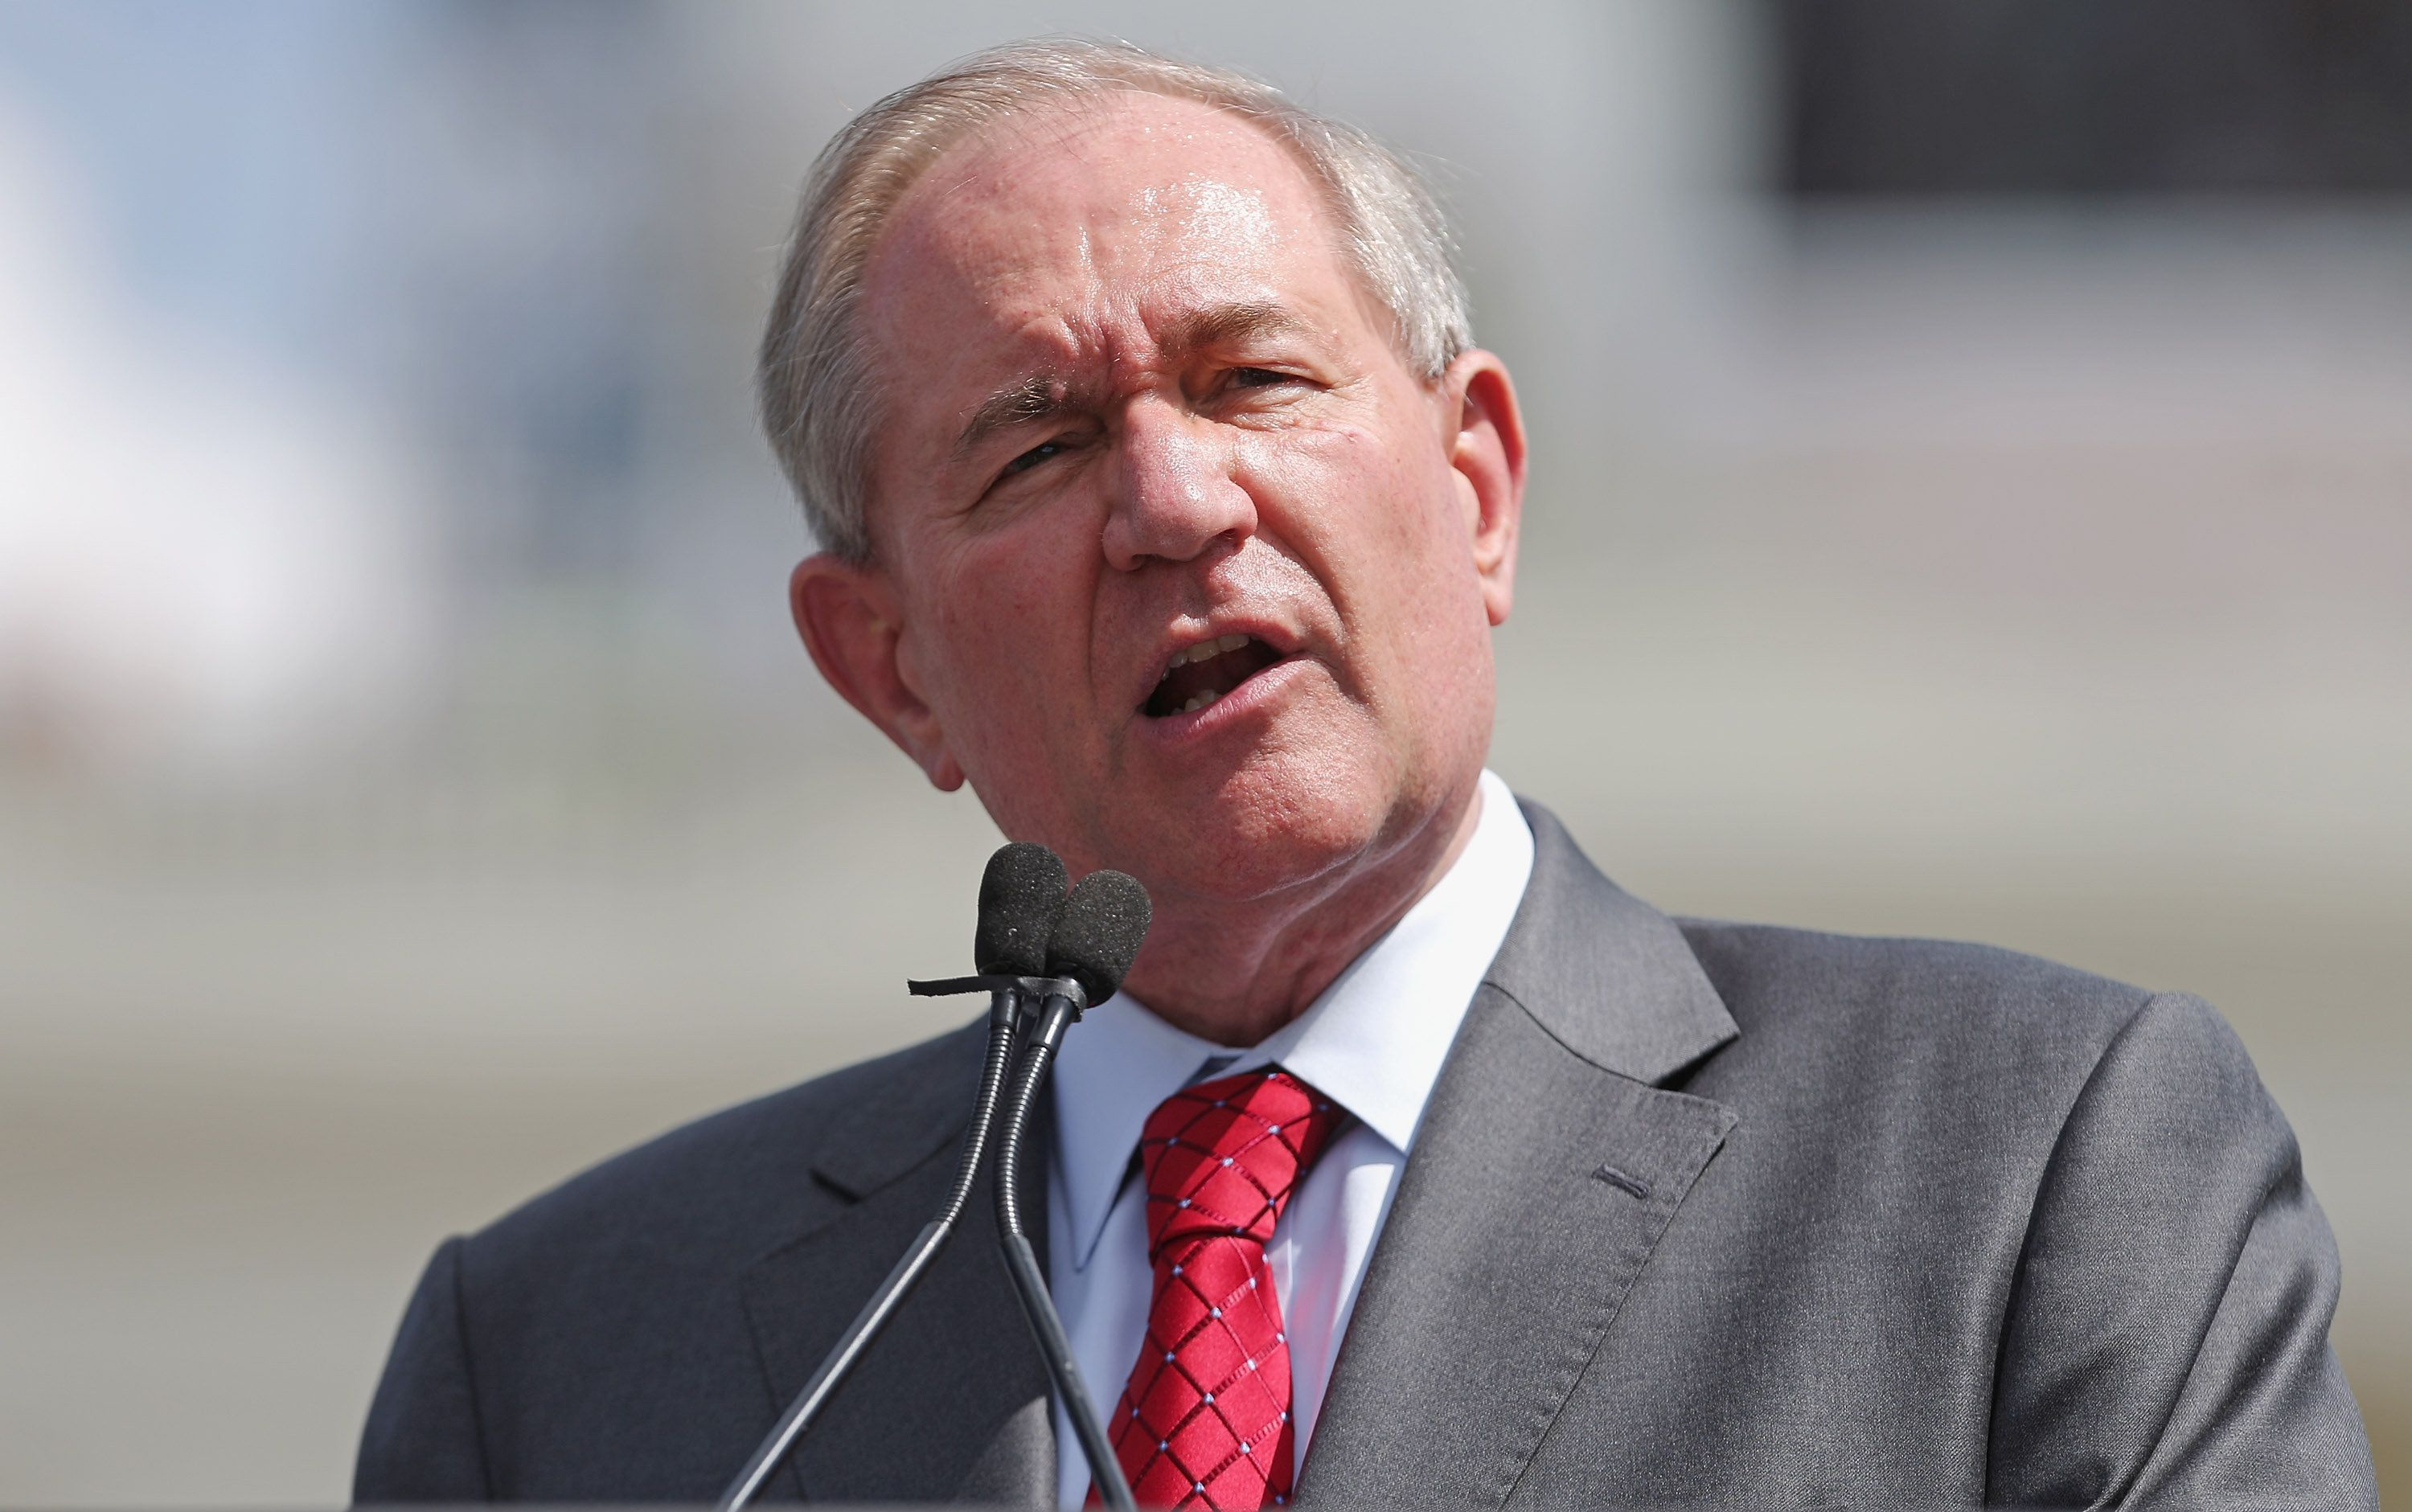 WASHINGTON, DC - SEPTEMBER 09:  Republican presidential candidate Jim Gilmore addresses a rally against the Iran nuclear deal on the West Lawn of the U.S. Capitol September 9, 2015 in Washington, DC. Thousands of people gathered for the rally, organized by the Tea Party Patriots, which featured conservative pundits and politicians.  (Photo by Chip Somodevilla/Getty Images)